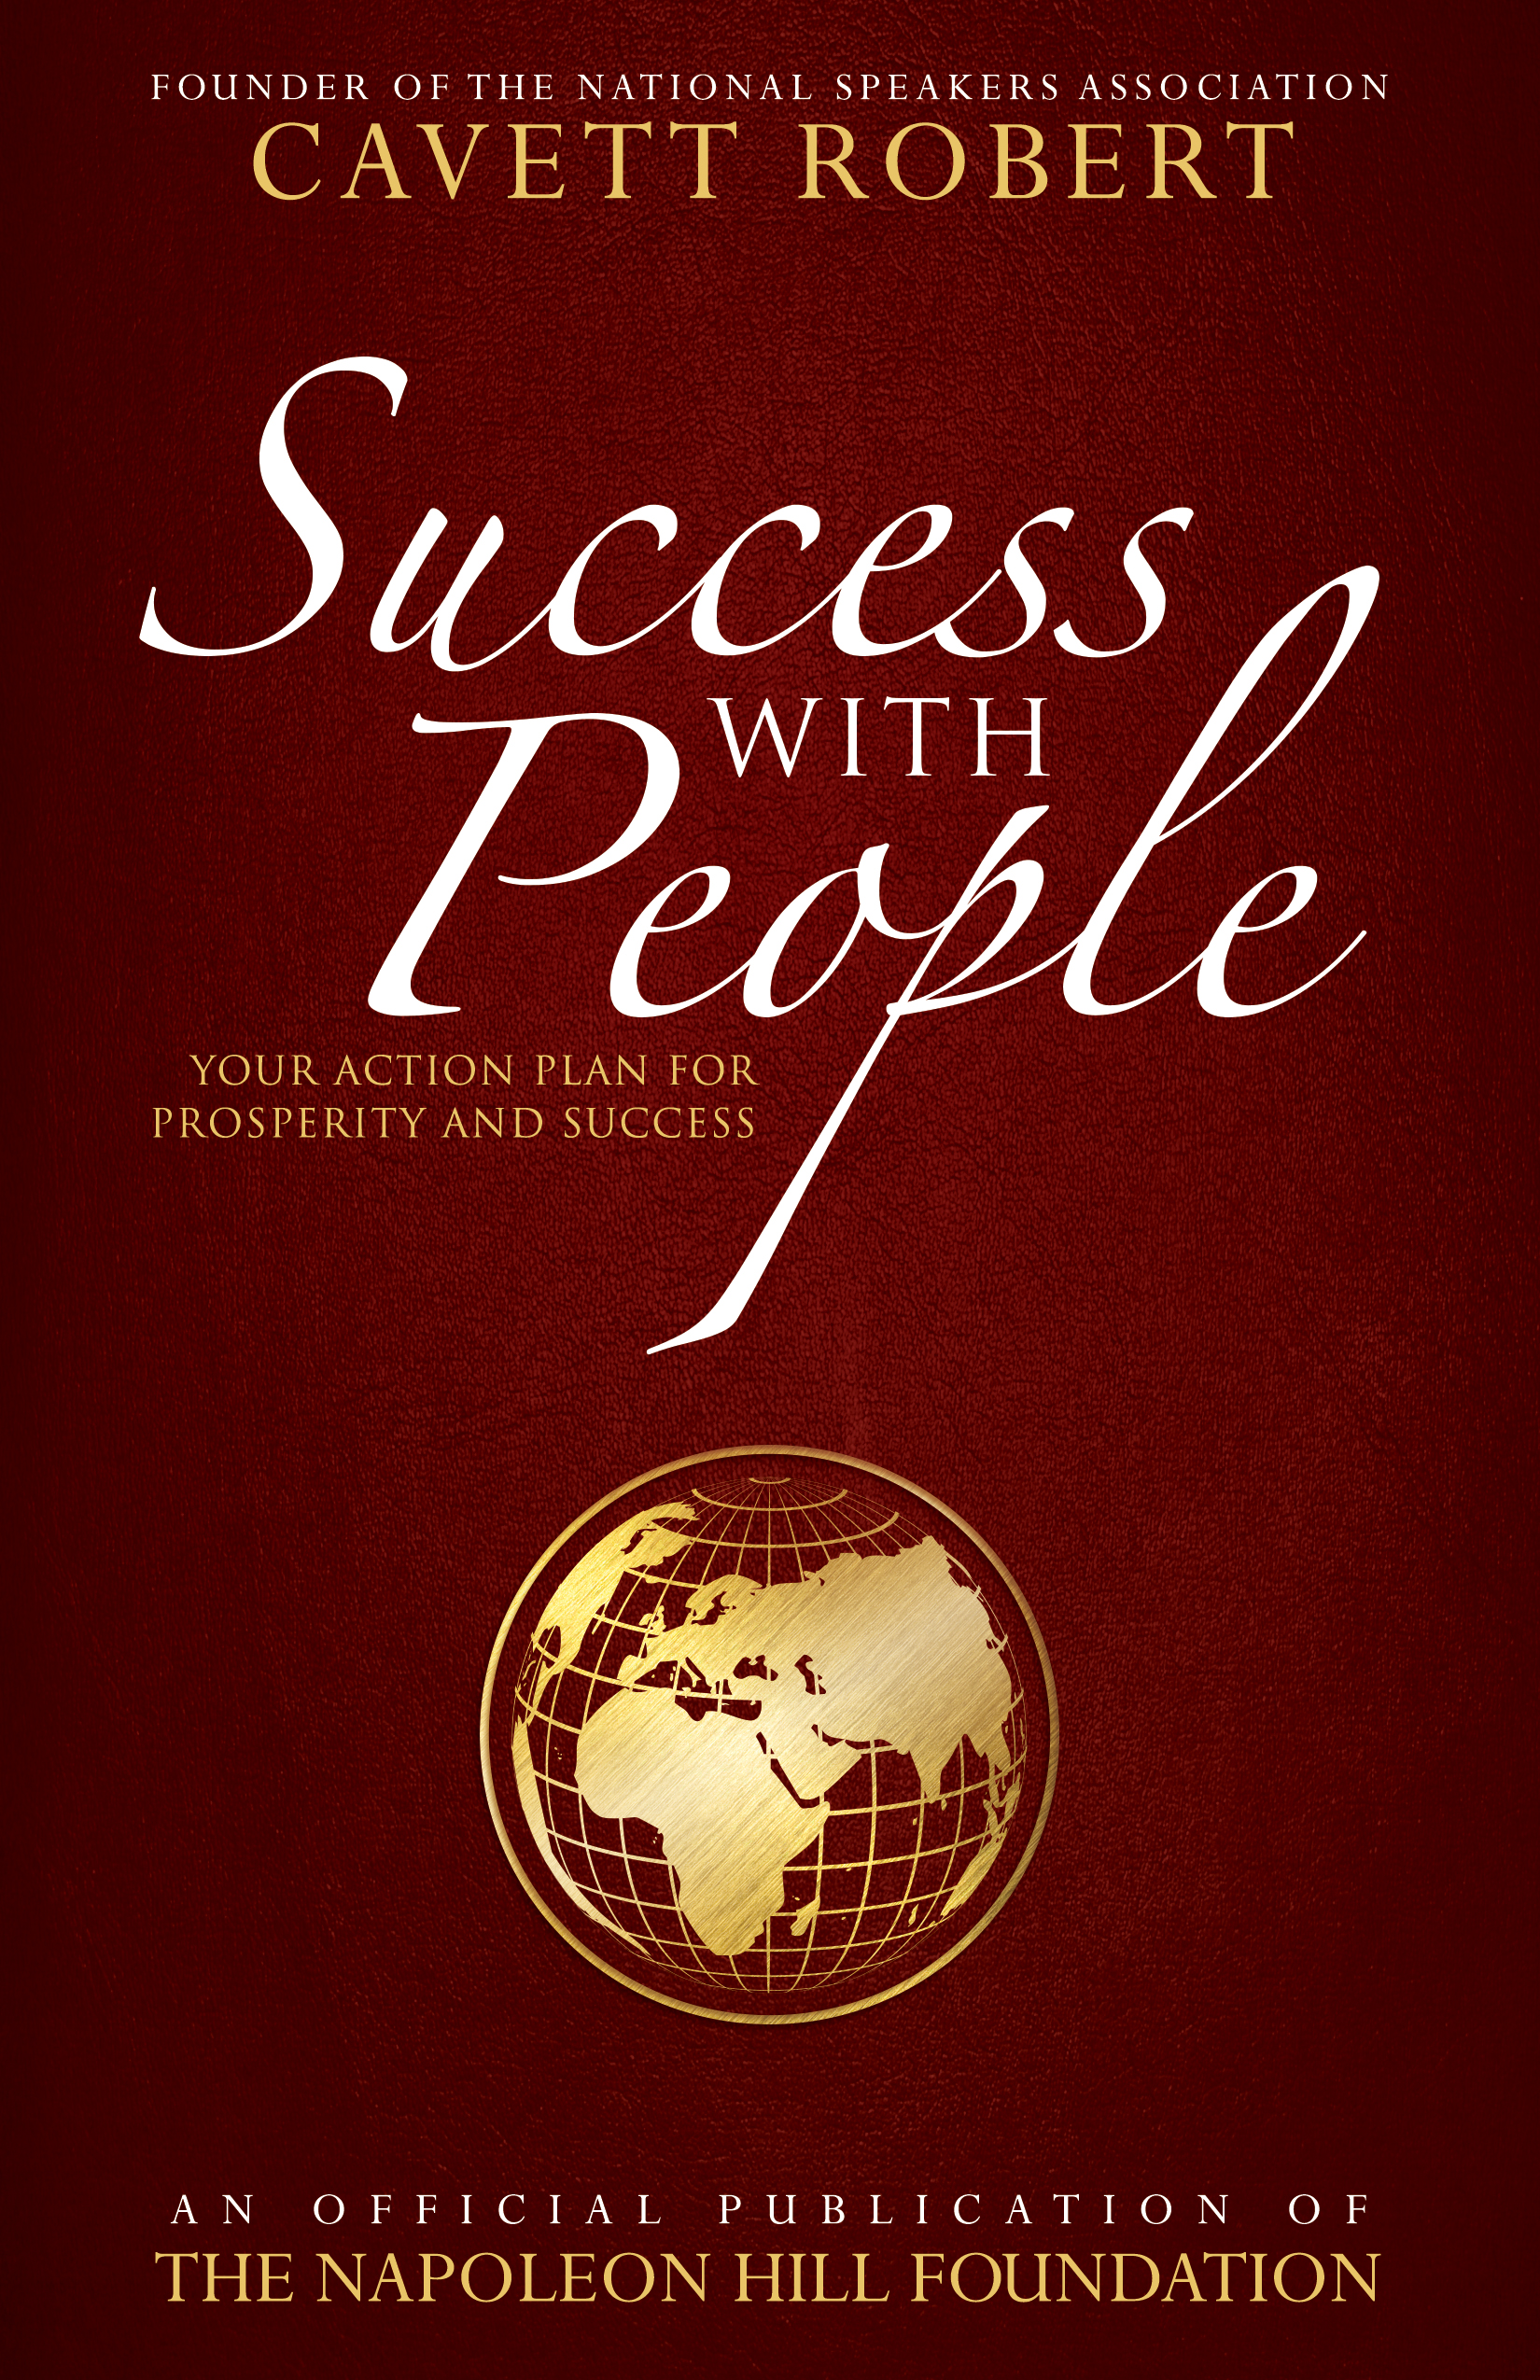 Success with People - Cavett Robert